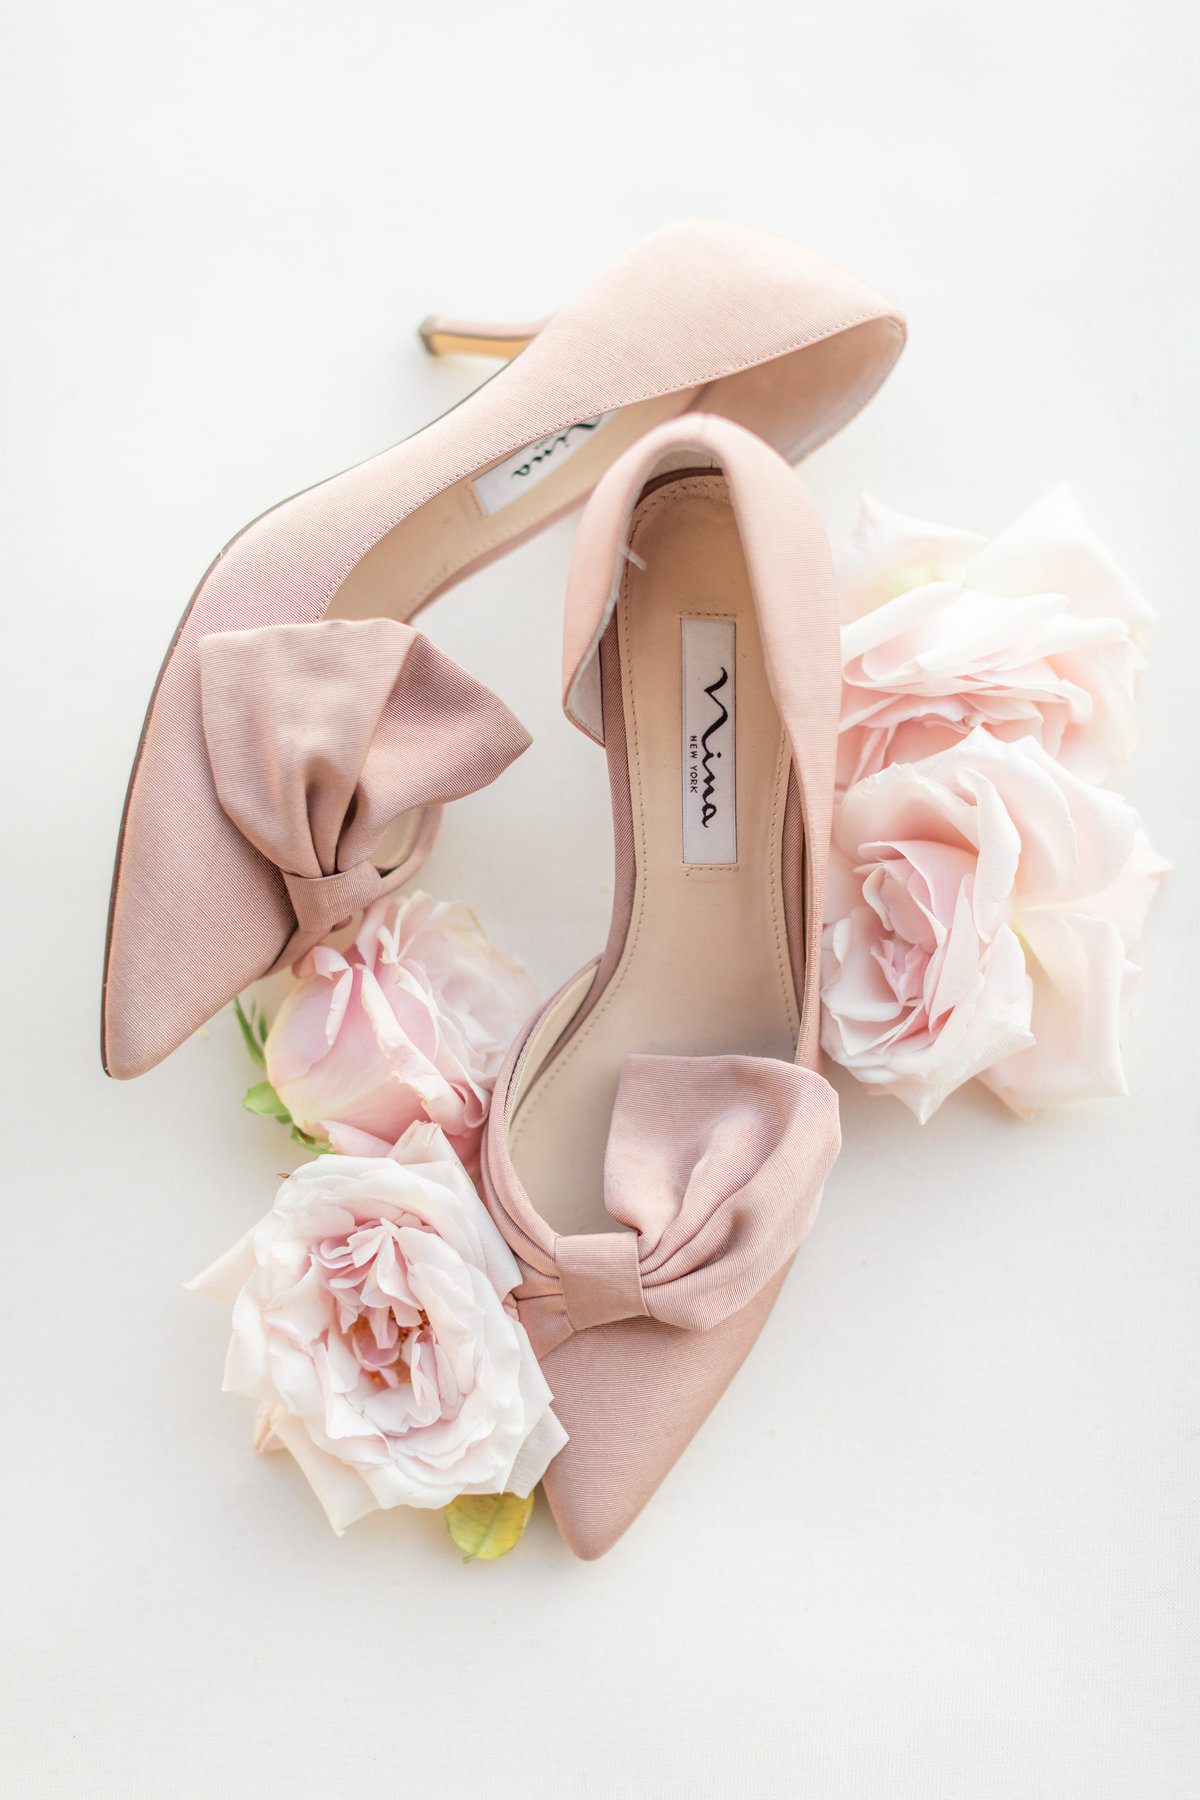 Light pink wedding shoes with bows on the toes